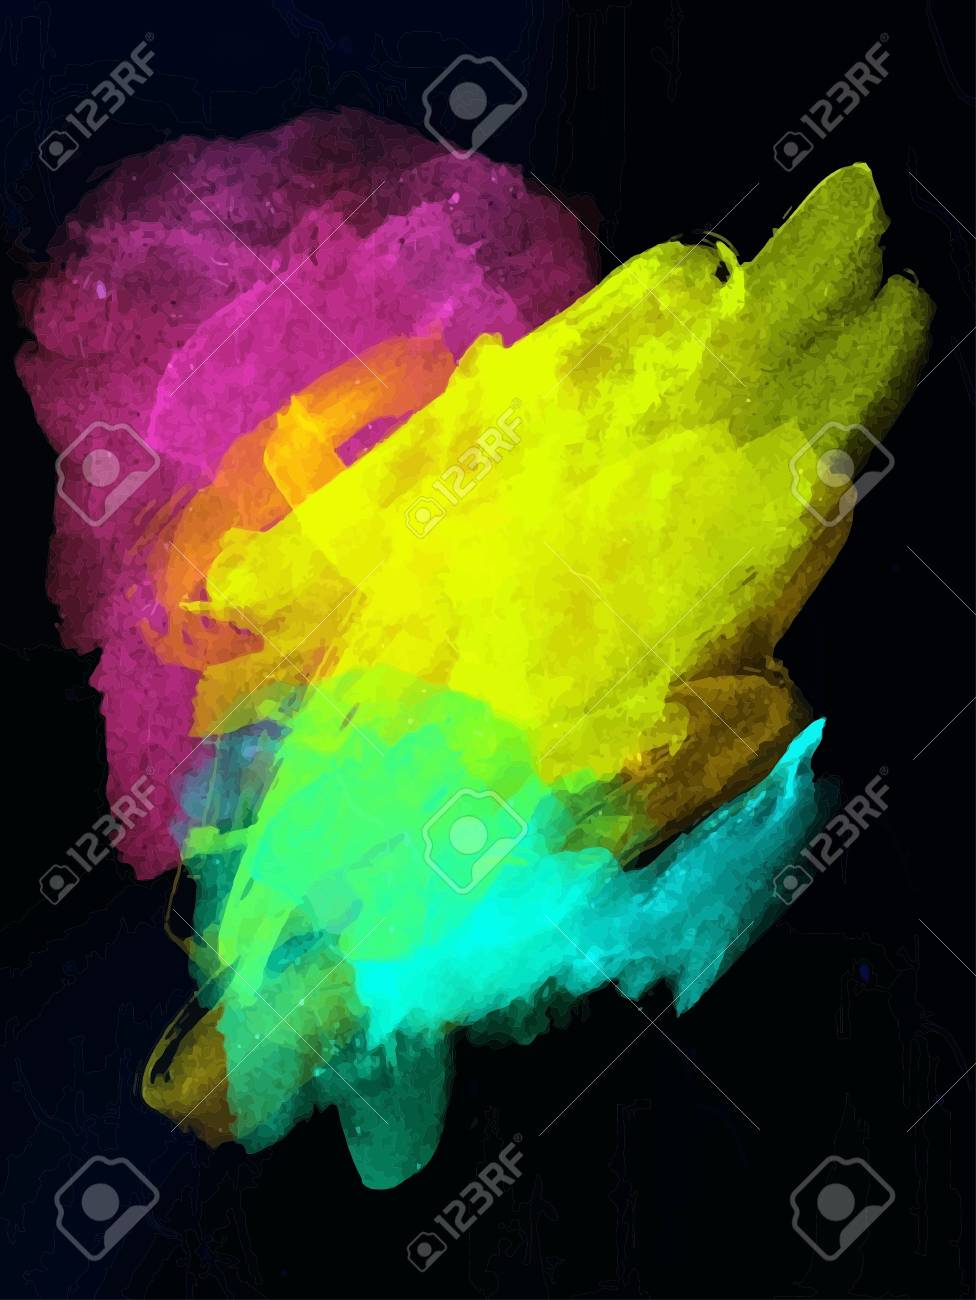 abstract art background digital painting color texture modern